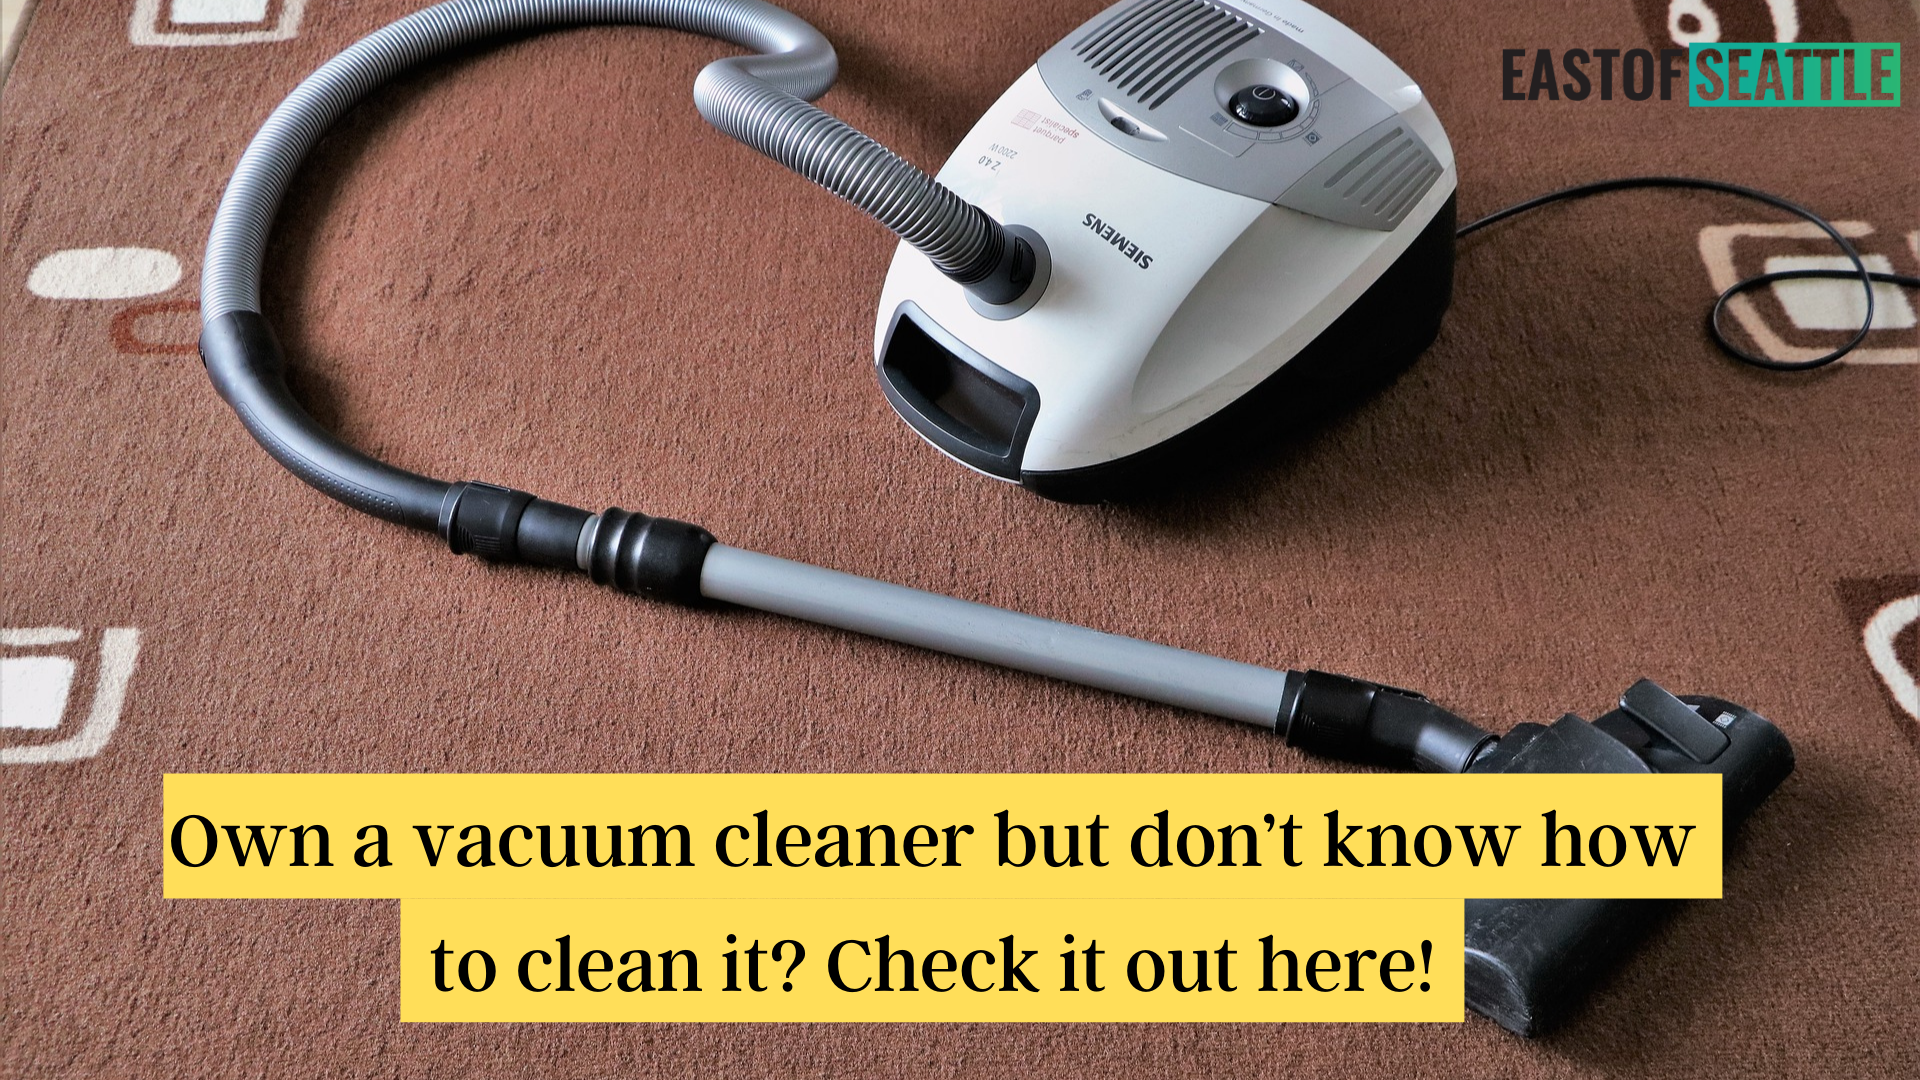 Own a vacuum cleaner but don't know how to clean it Check it out here!